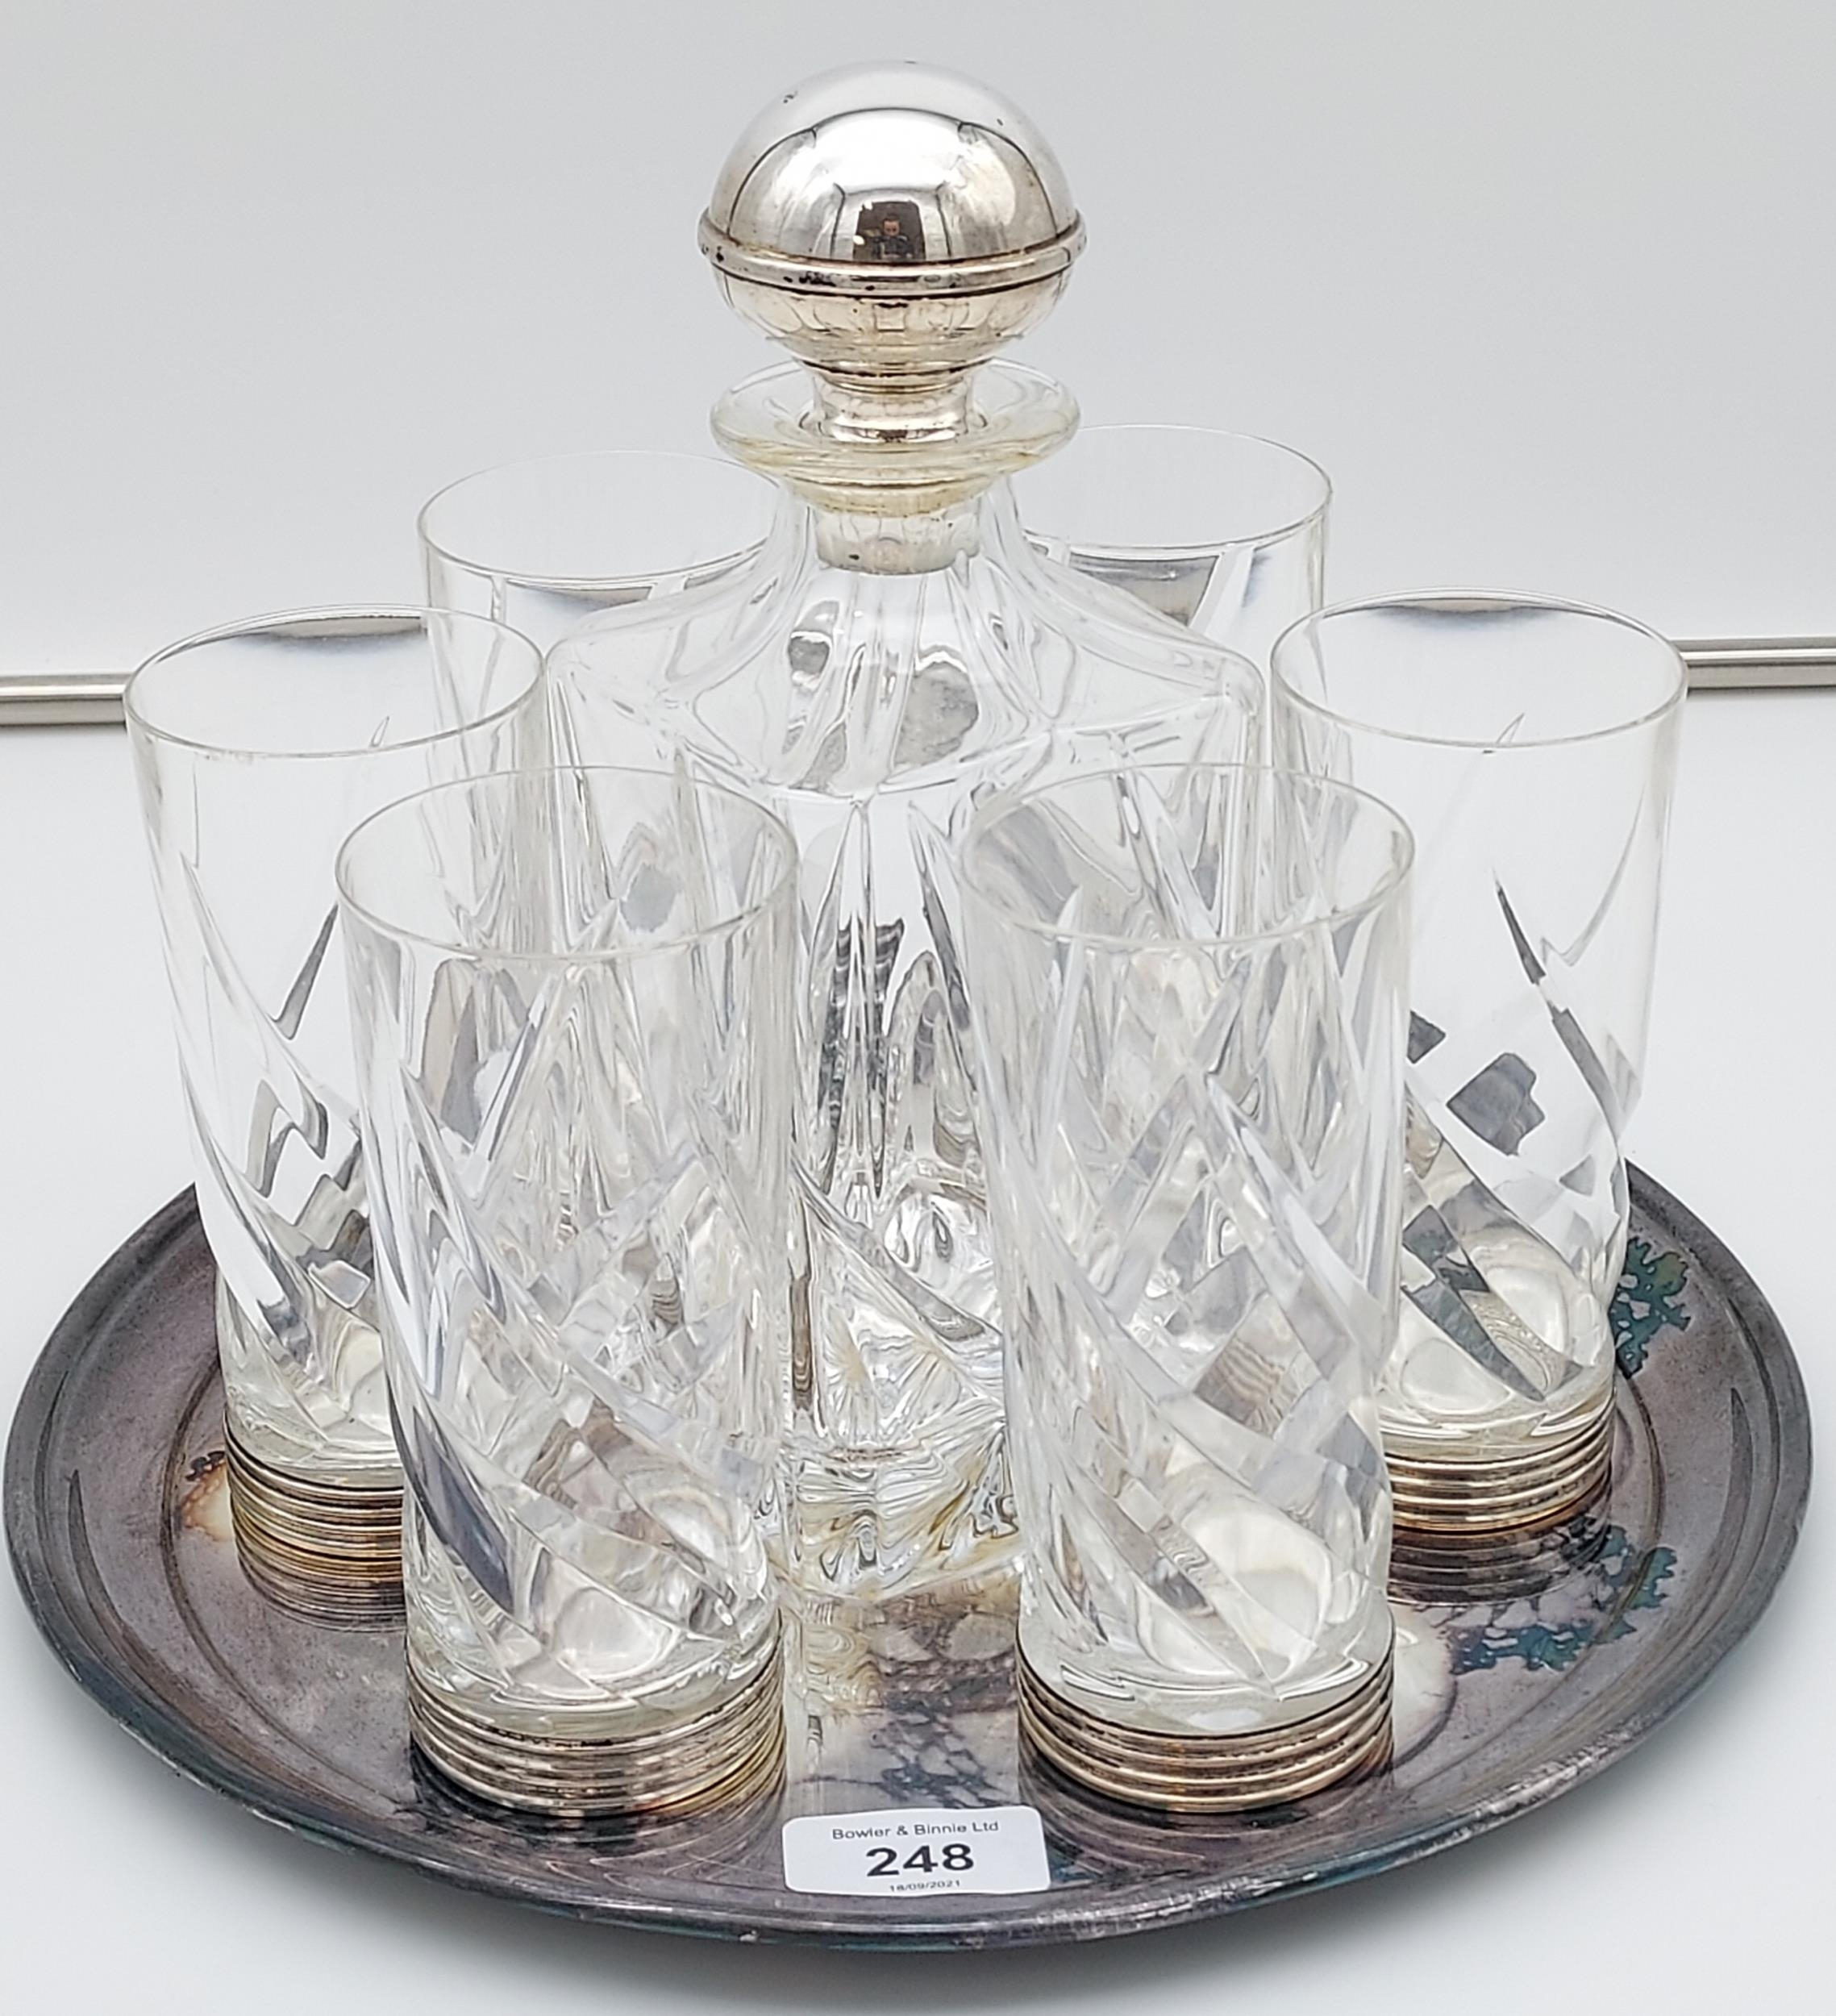 Crystal decanter with a 800 grade silver stopper, with 6 matching drinks glasses with silver